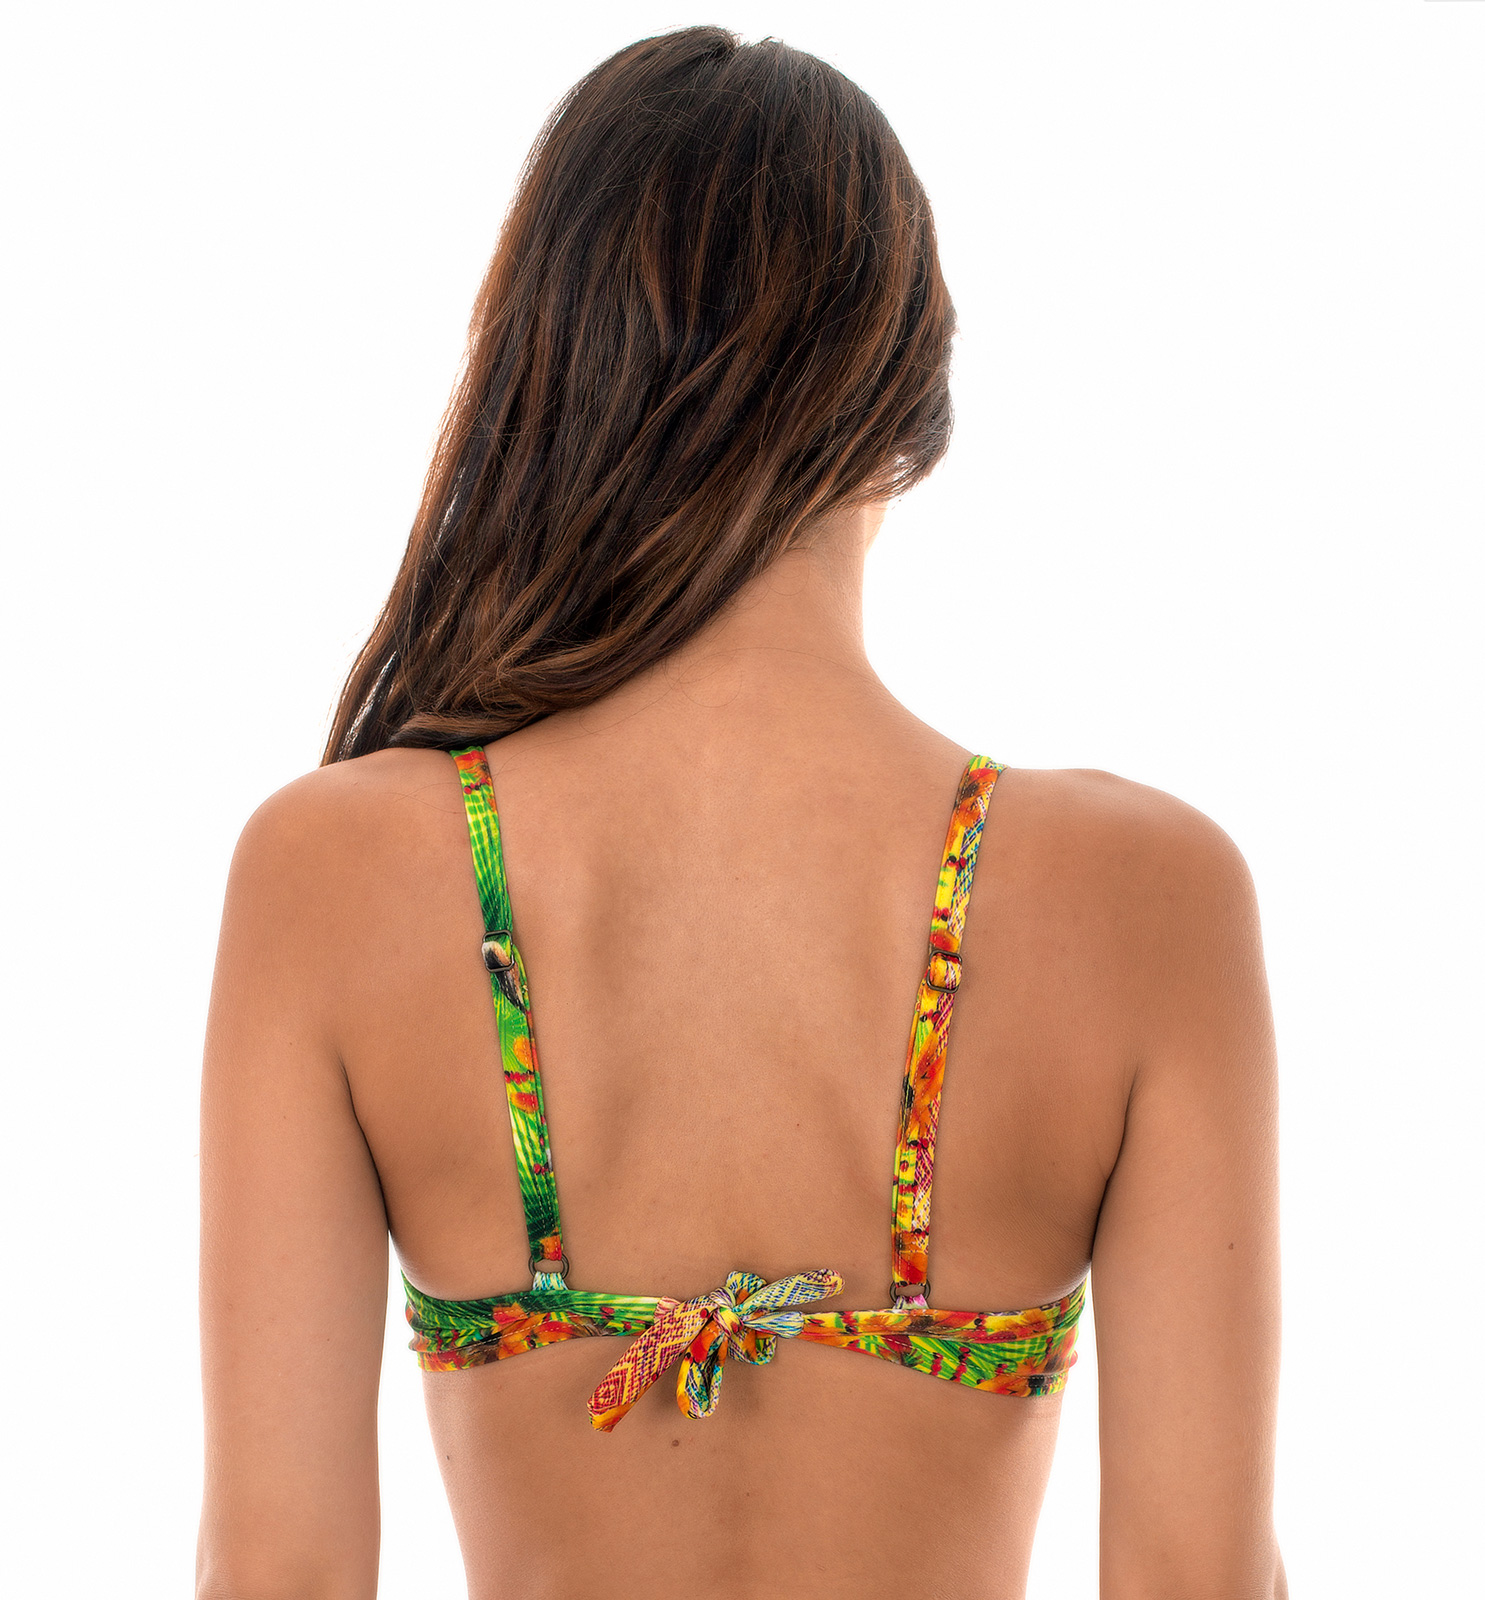 b4fc47eaef Push-up Balconnet Printed Tropical Bra - Soutien Terra Amazonia Fio ...